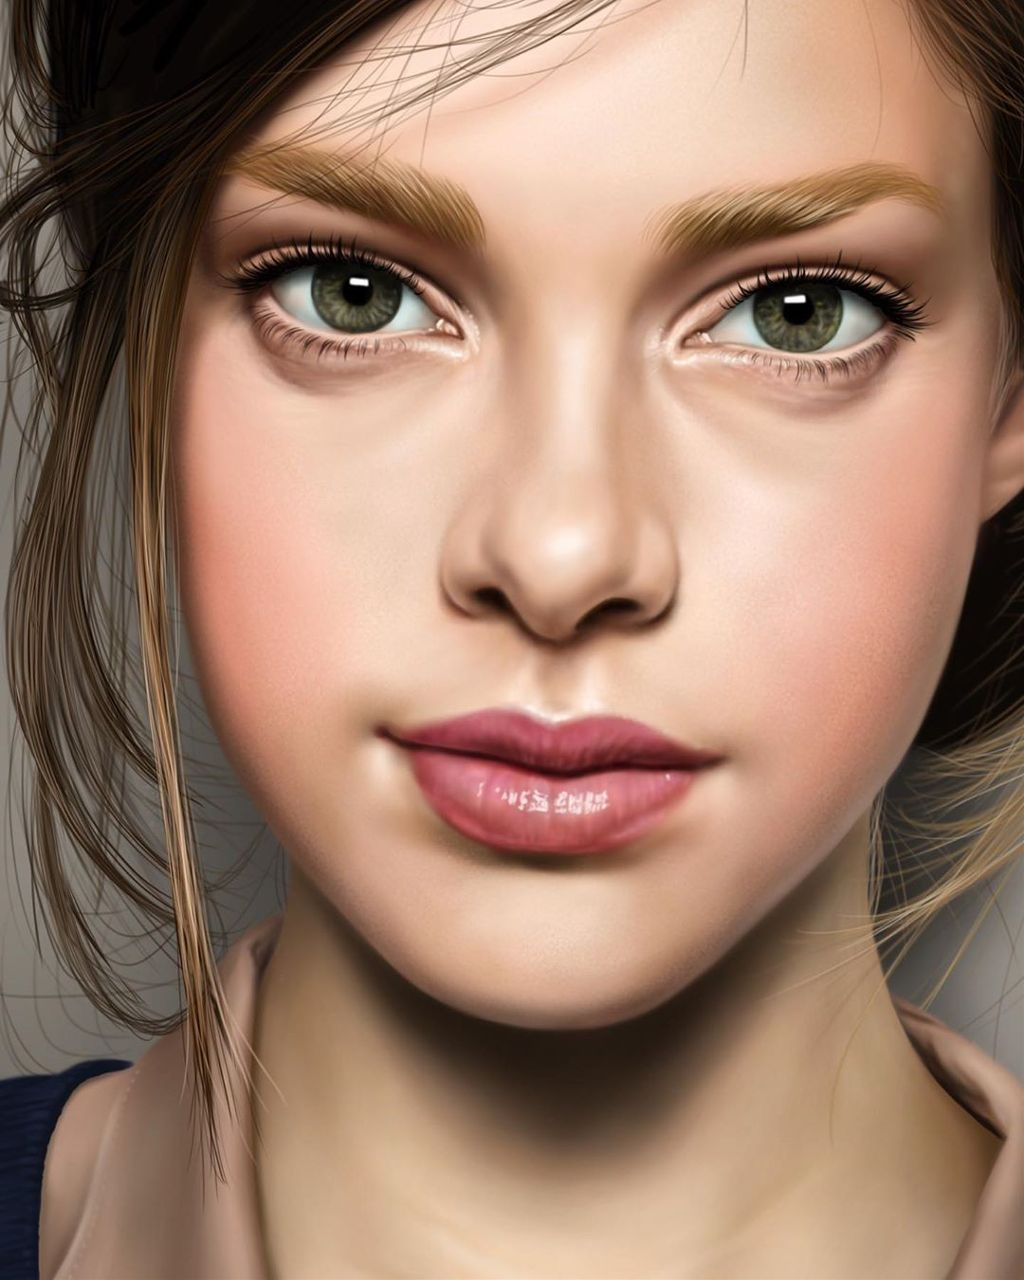 #jinsung #jinsunglim70 #digitalpainting #portraits #portrait #digitalart #painting #drawing #pain #illustration #illustrator #sketch #model #girl #beautiful #woman #procreate  #freetoedit #face #wallpapers